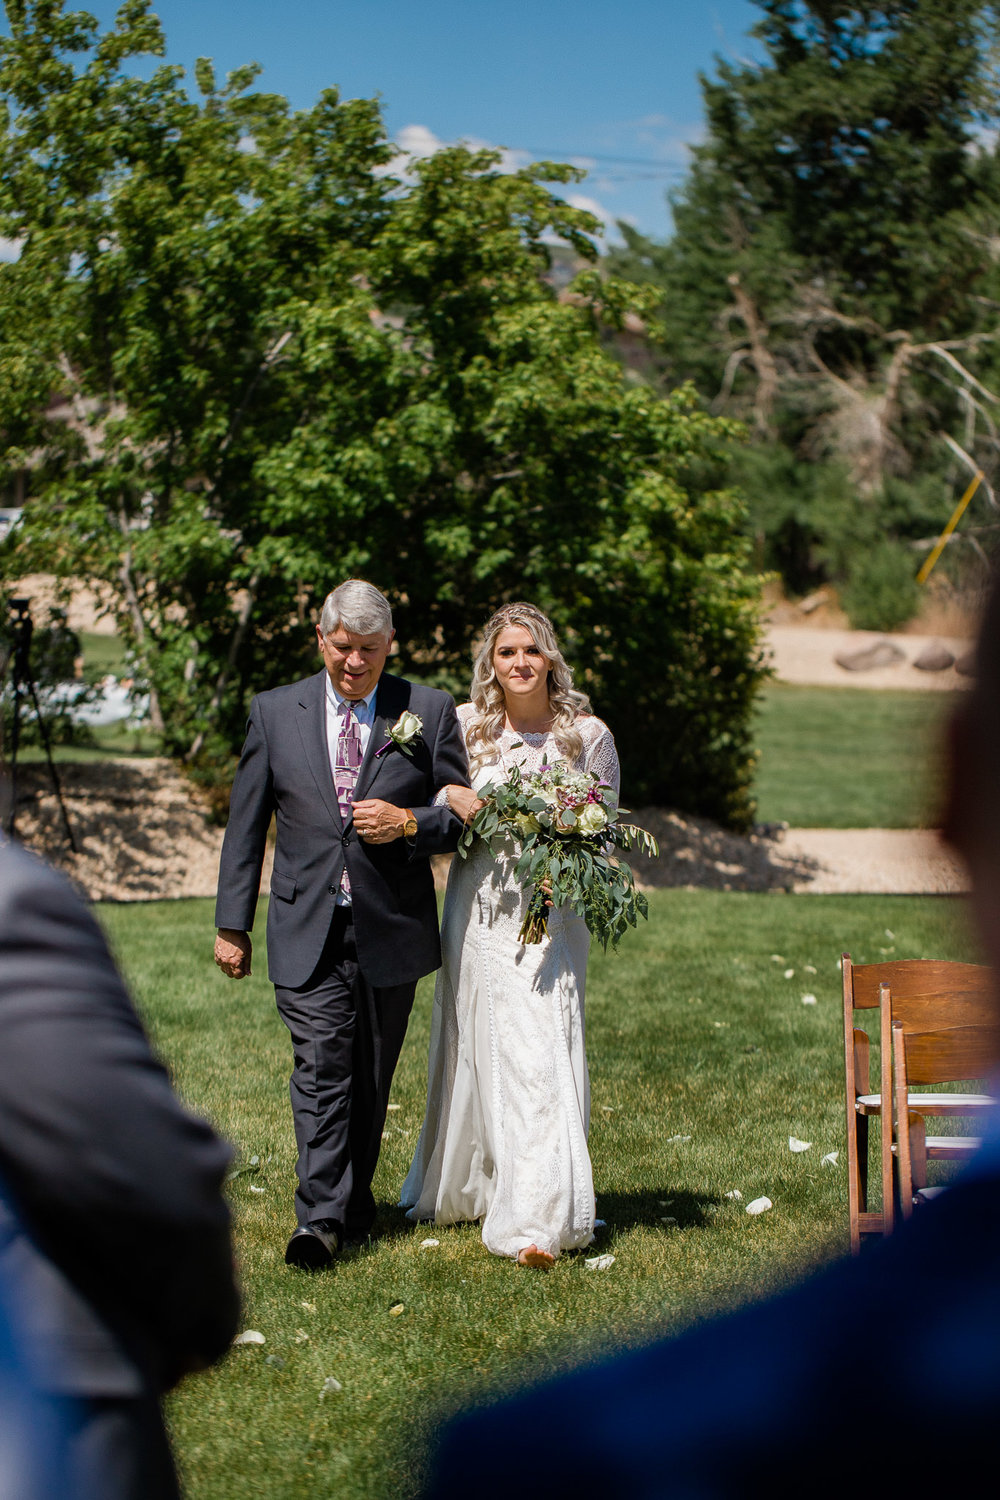 Bride and Father walking down aisle during wedding ceremony